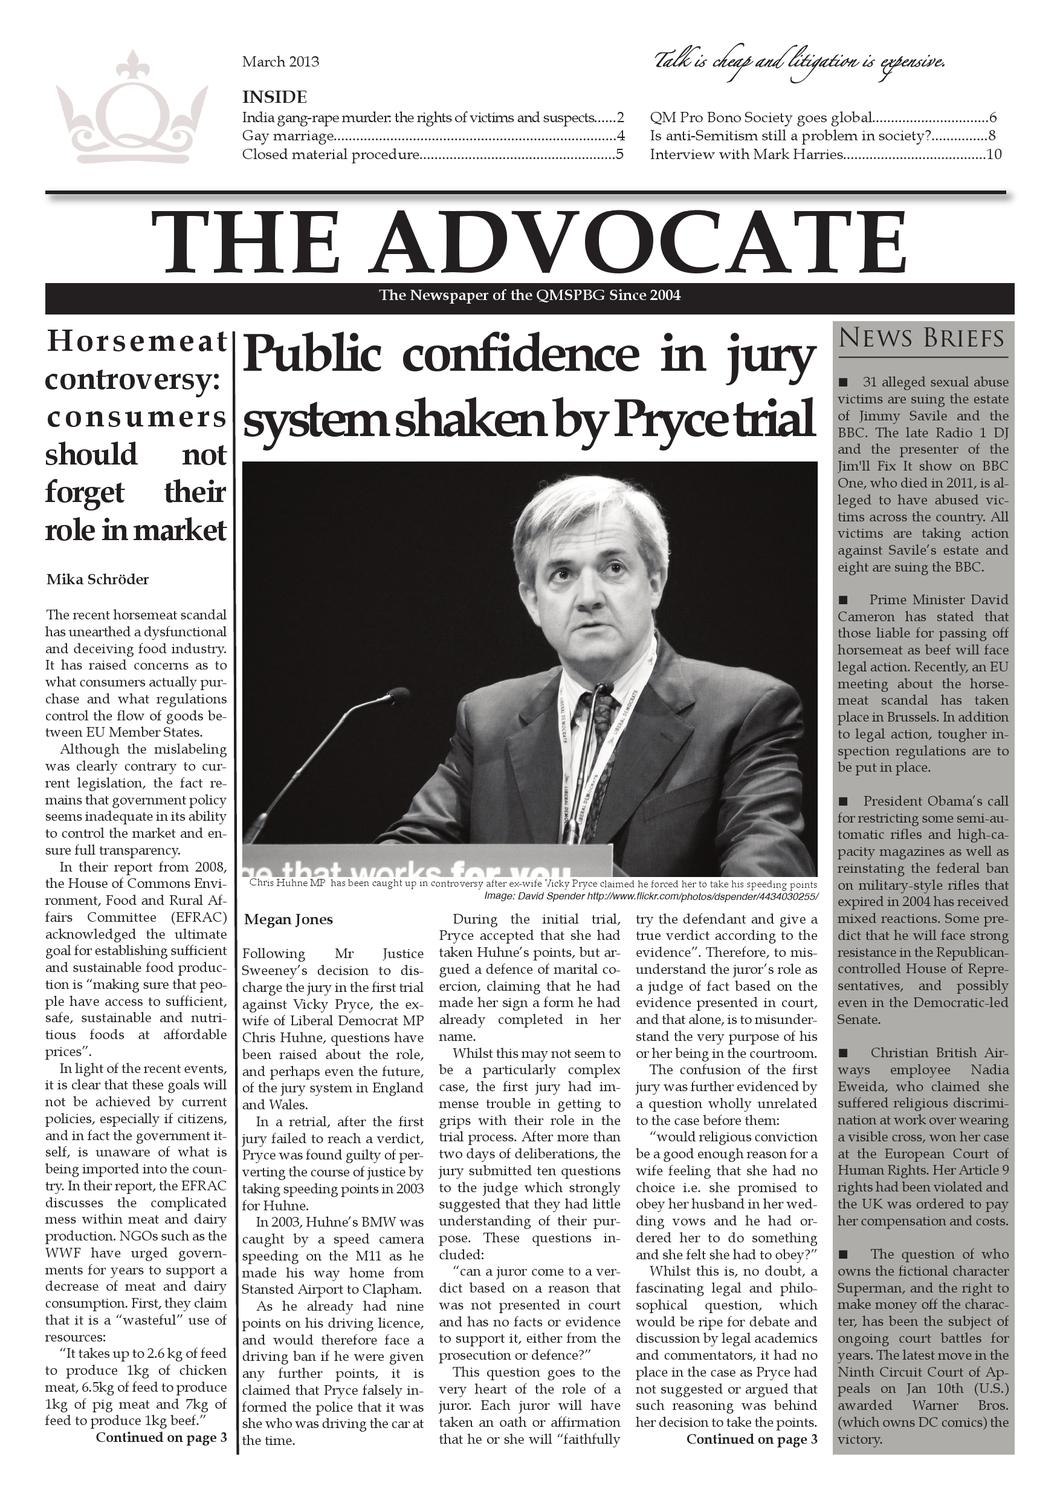 The Advocate Issuu VII by The Advocate Legal News - issuu